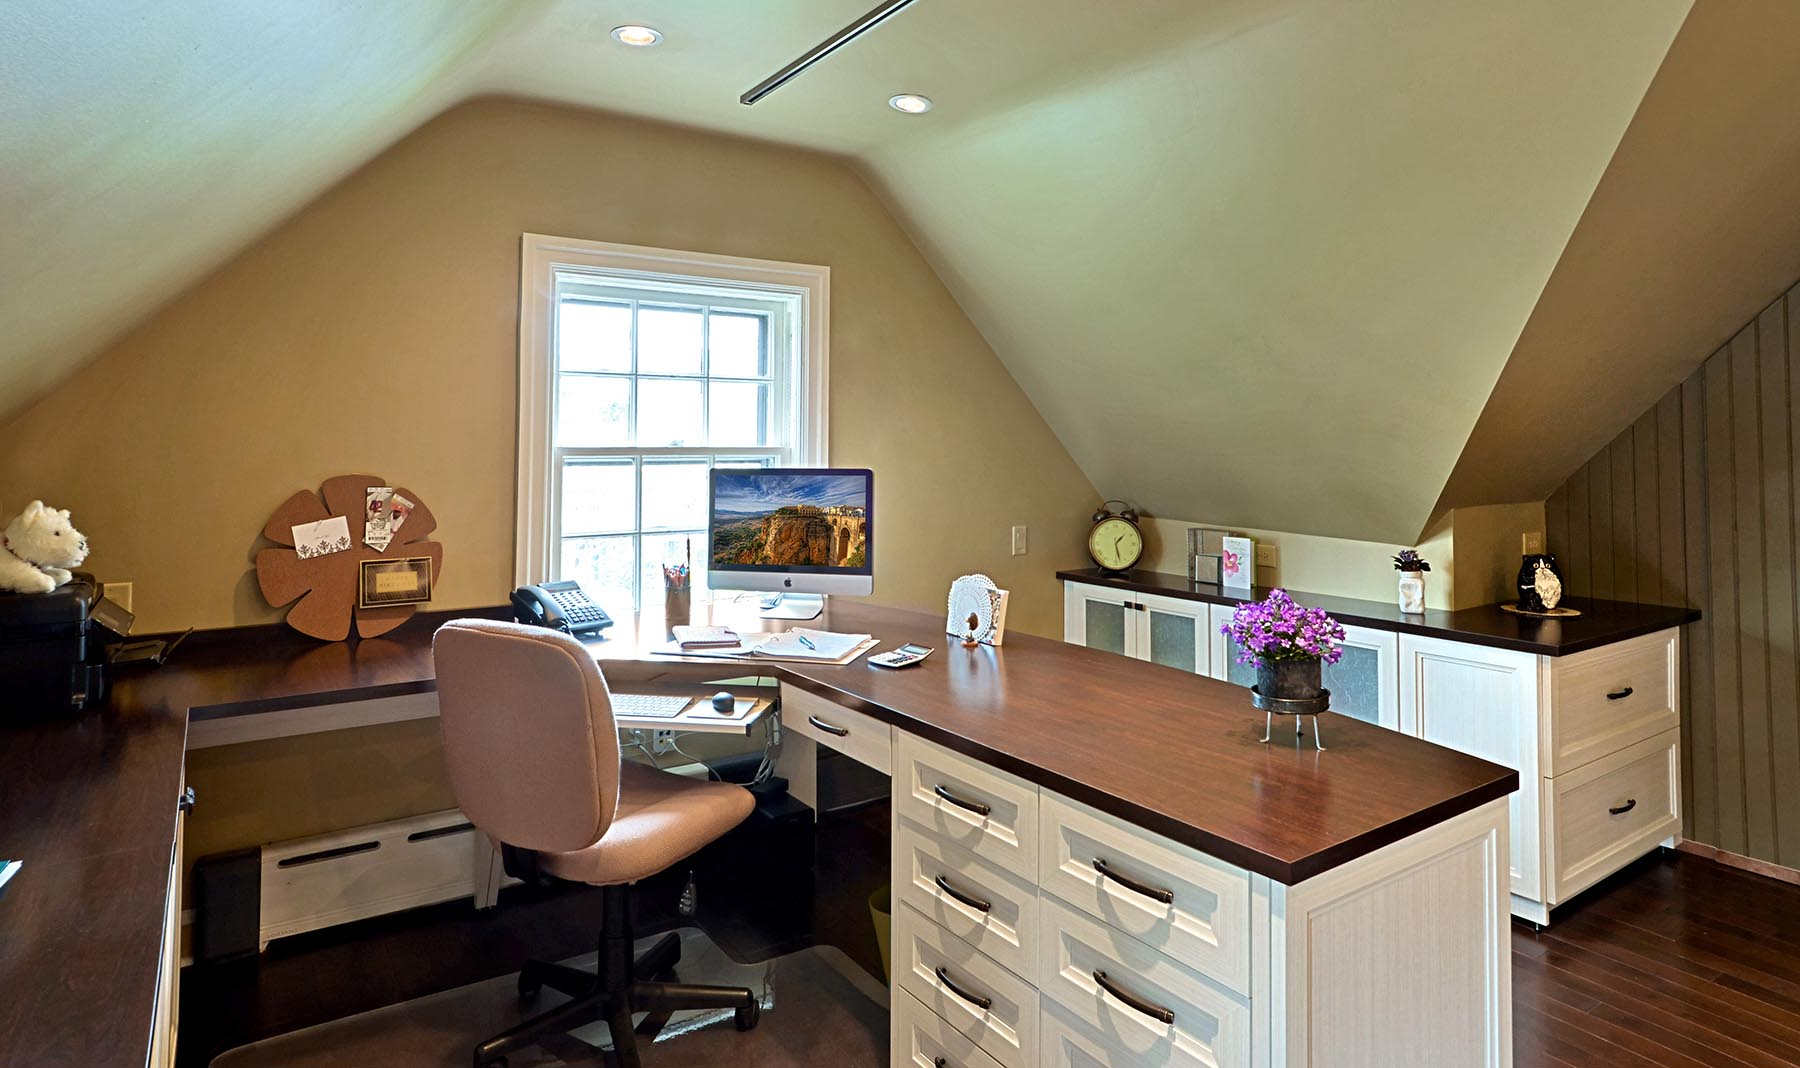 Secrets for Designing a Productive Home Office